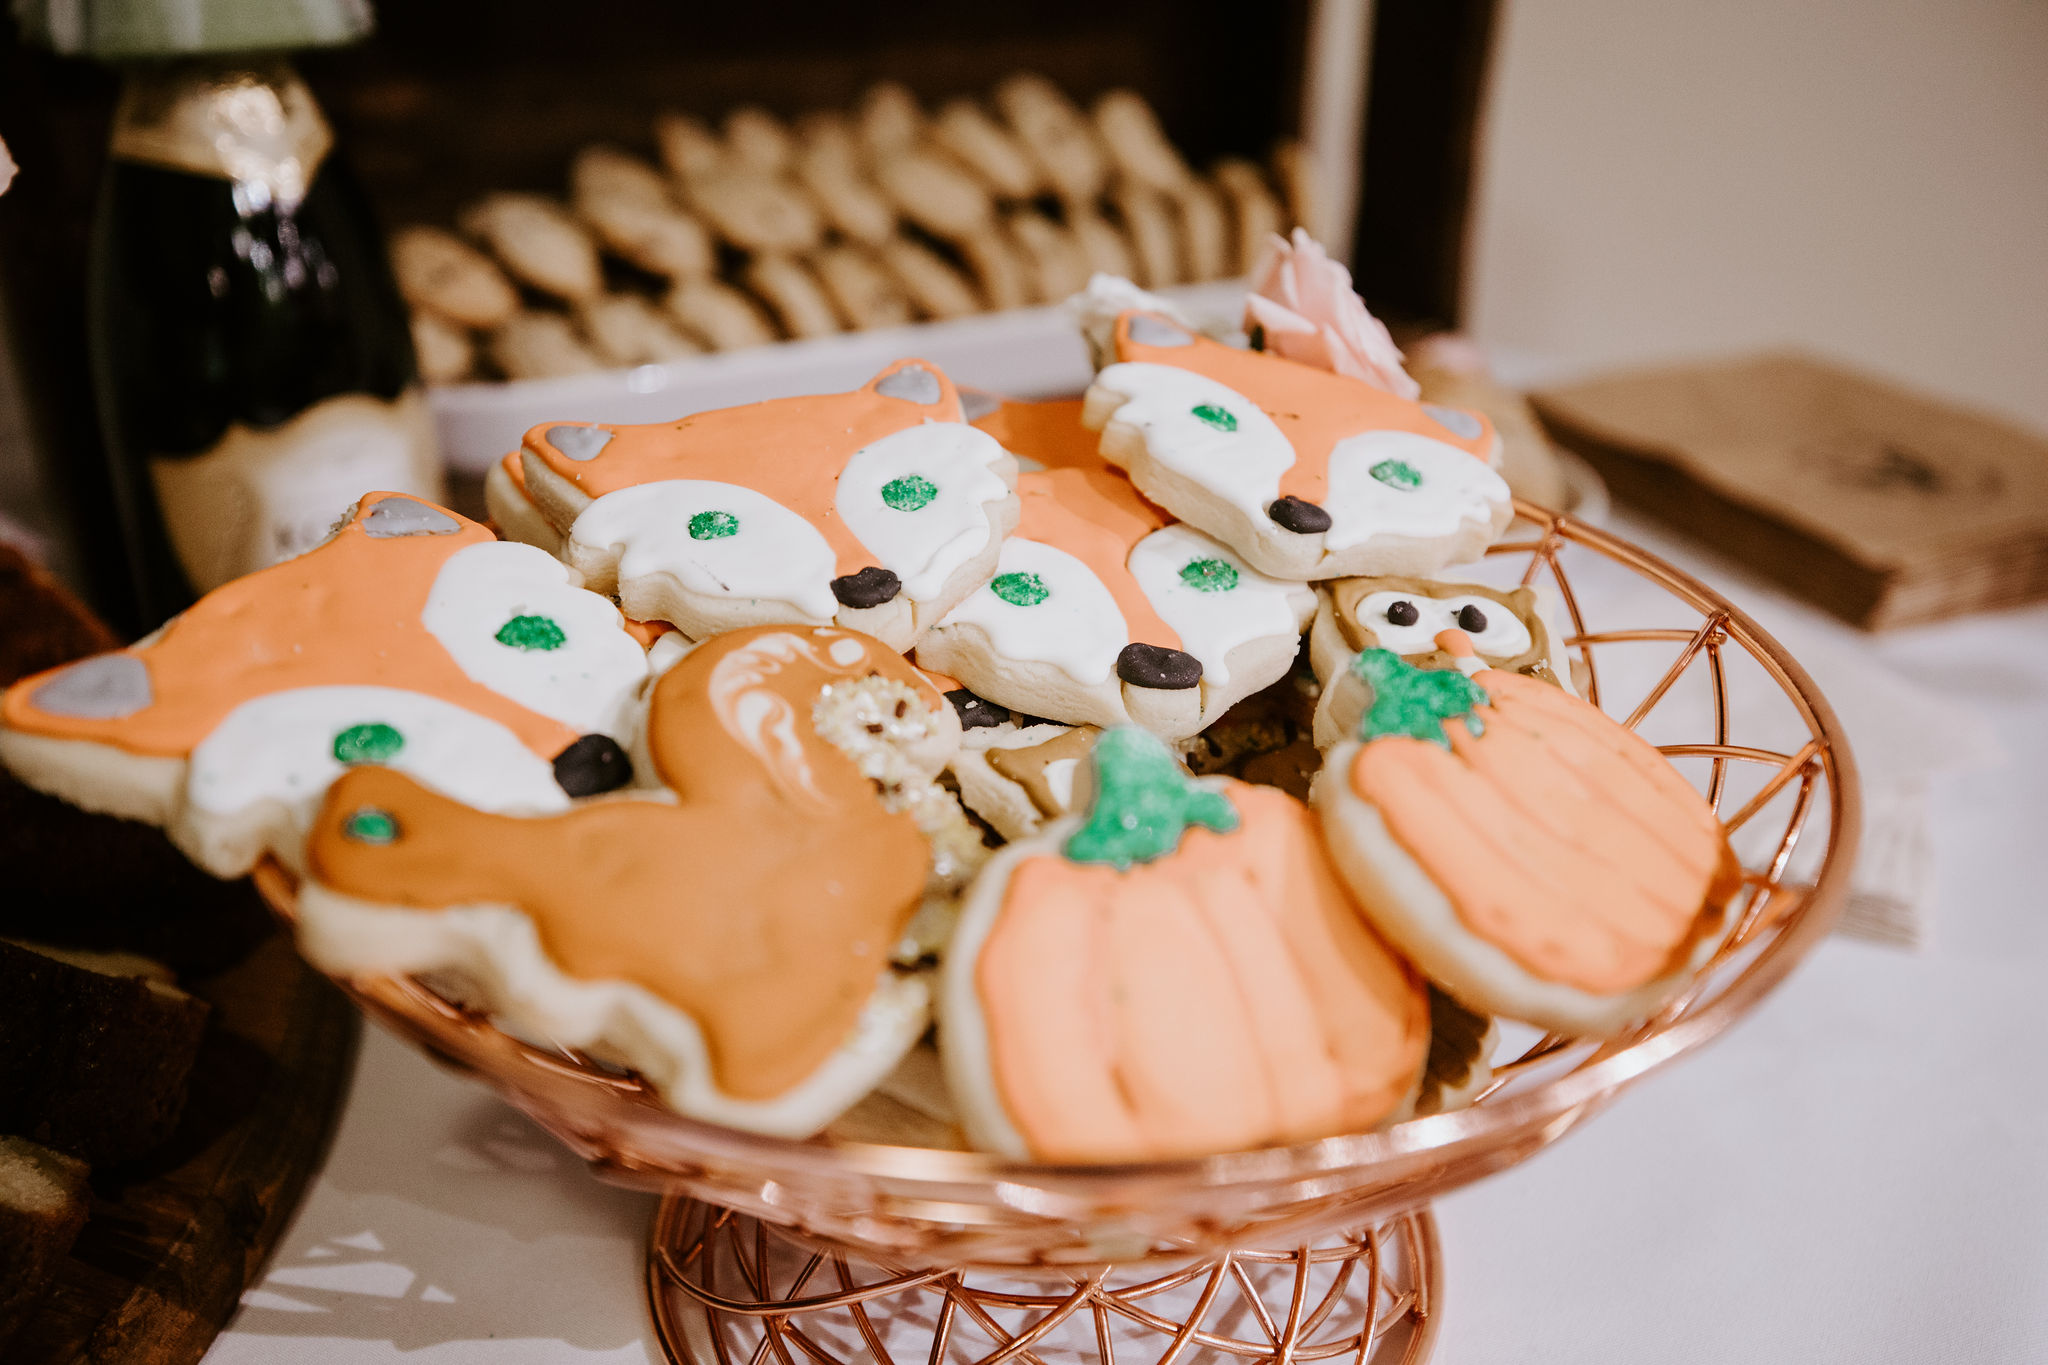 www.santabarbarawedding.com | Geoff and Lyndsi Photography | Santa Barbara Museum of Natural History | Jamie Mangone of LuJane Events | Baking the Goods | I'll Have What She's Having | Fall Cookies